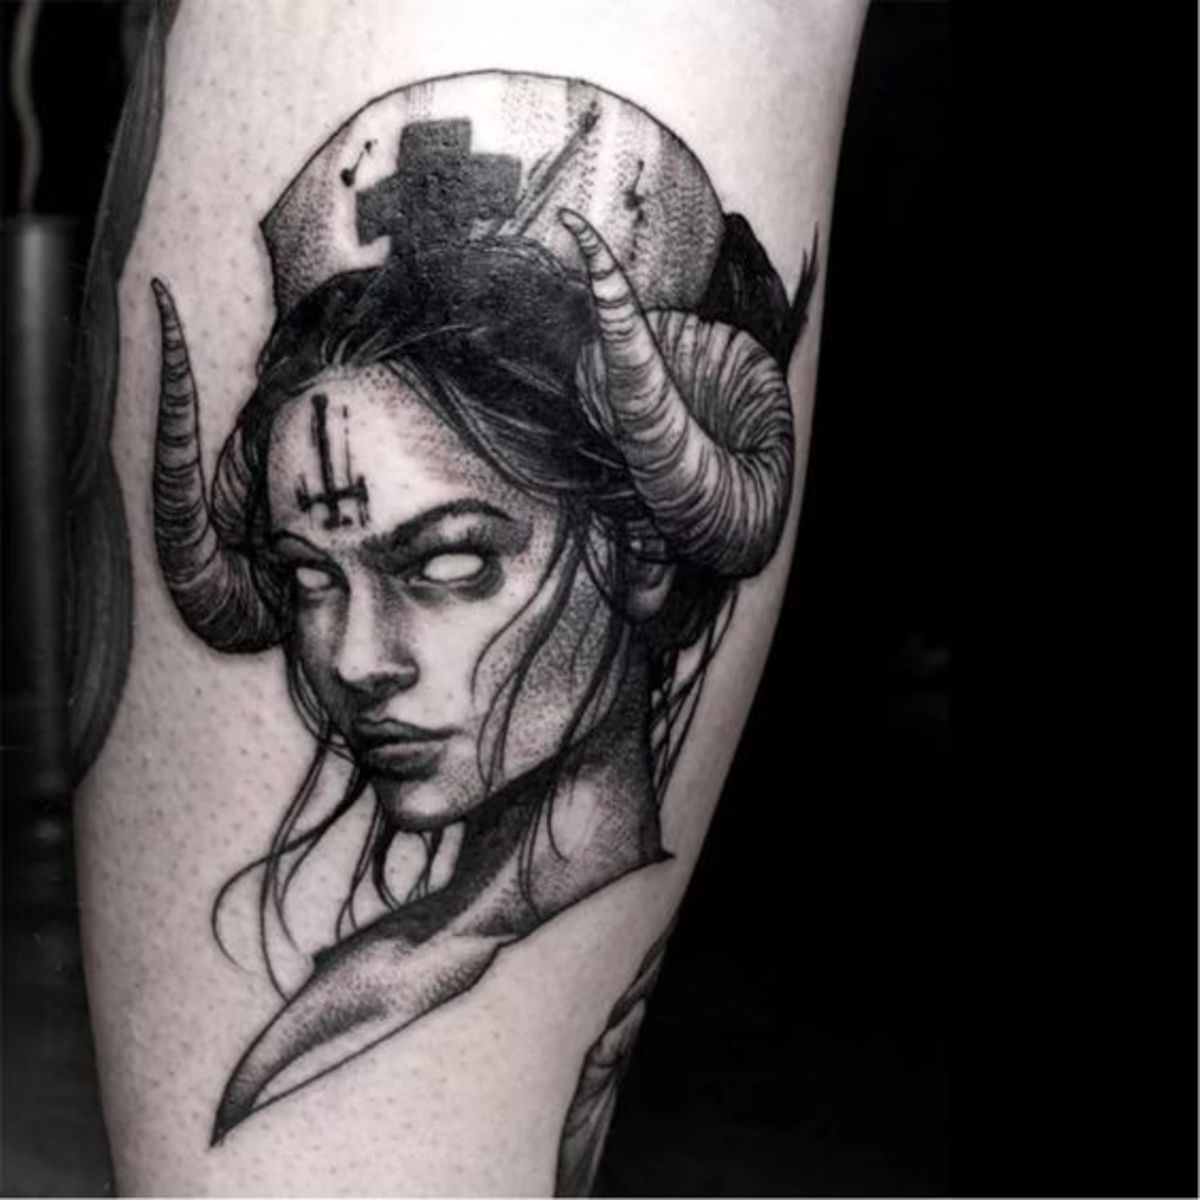 Aries hell nurse tattoo by G.ghost Korea